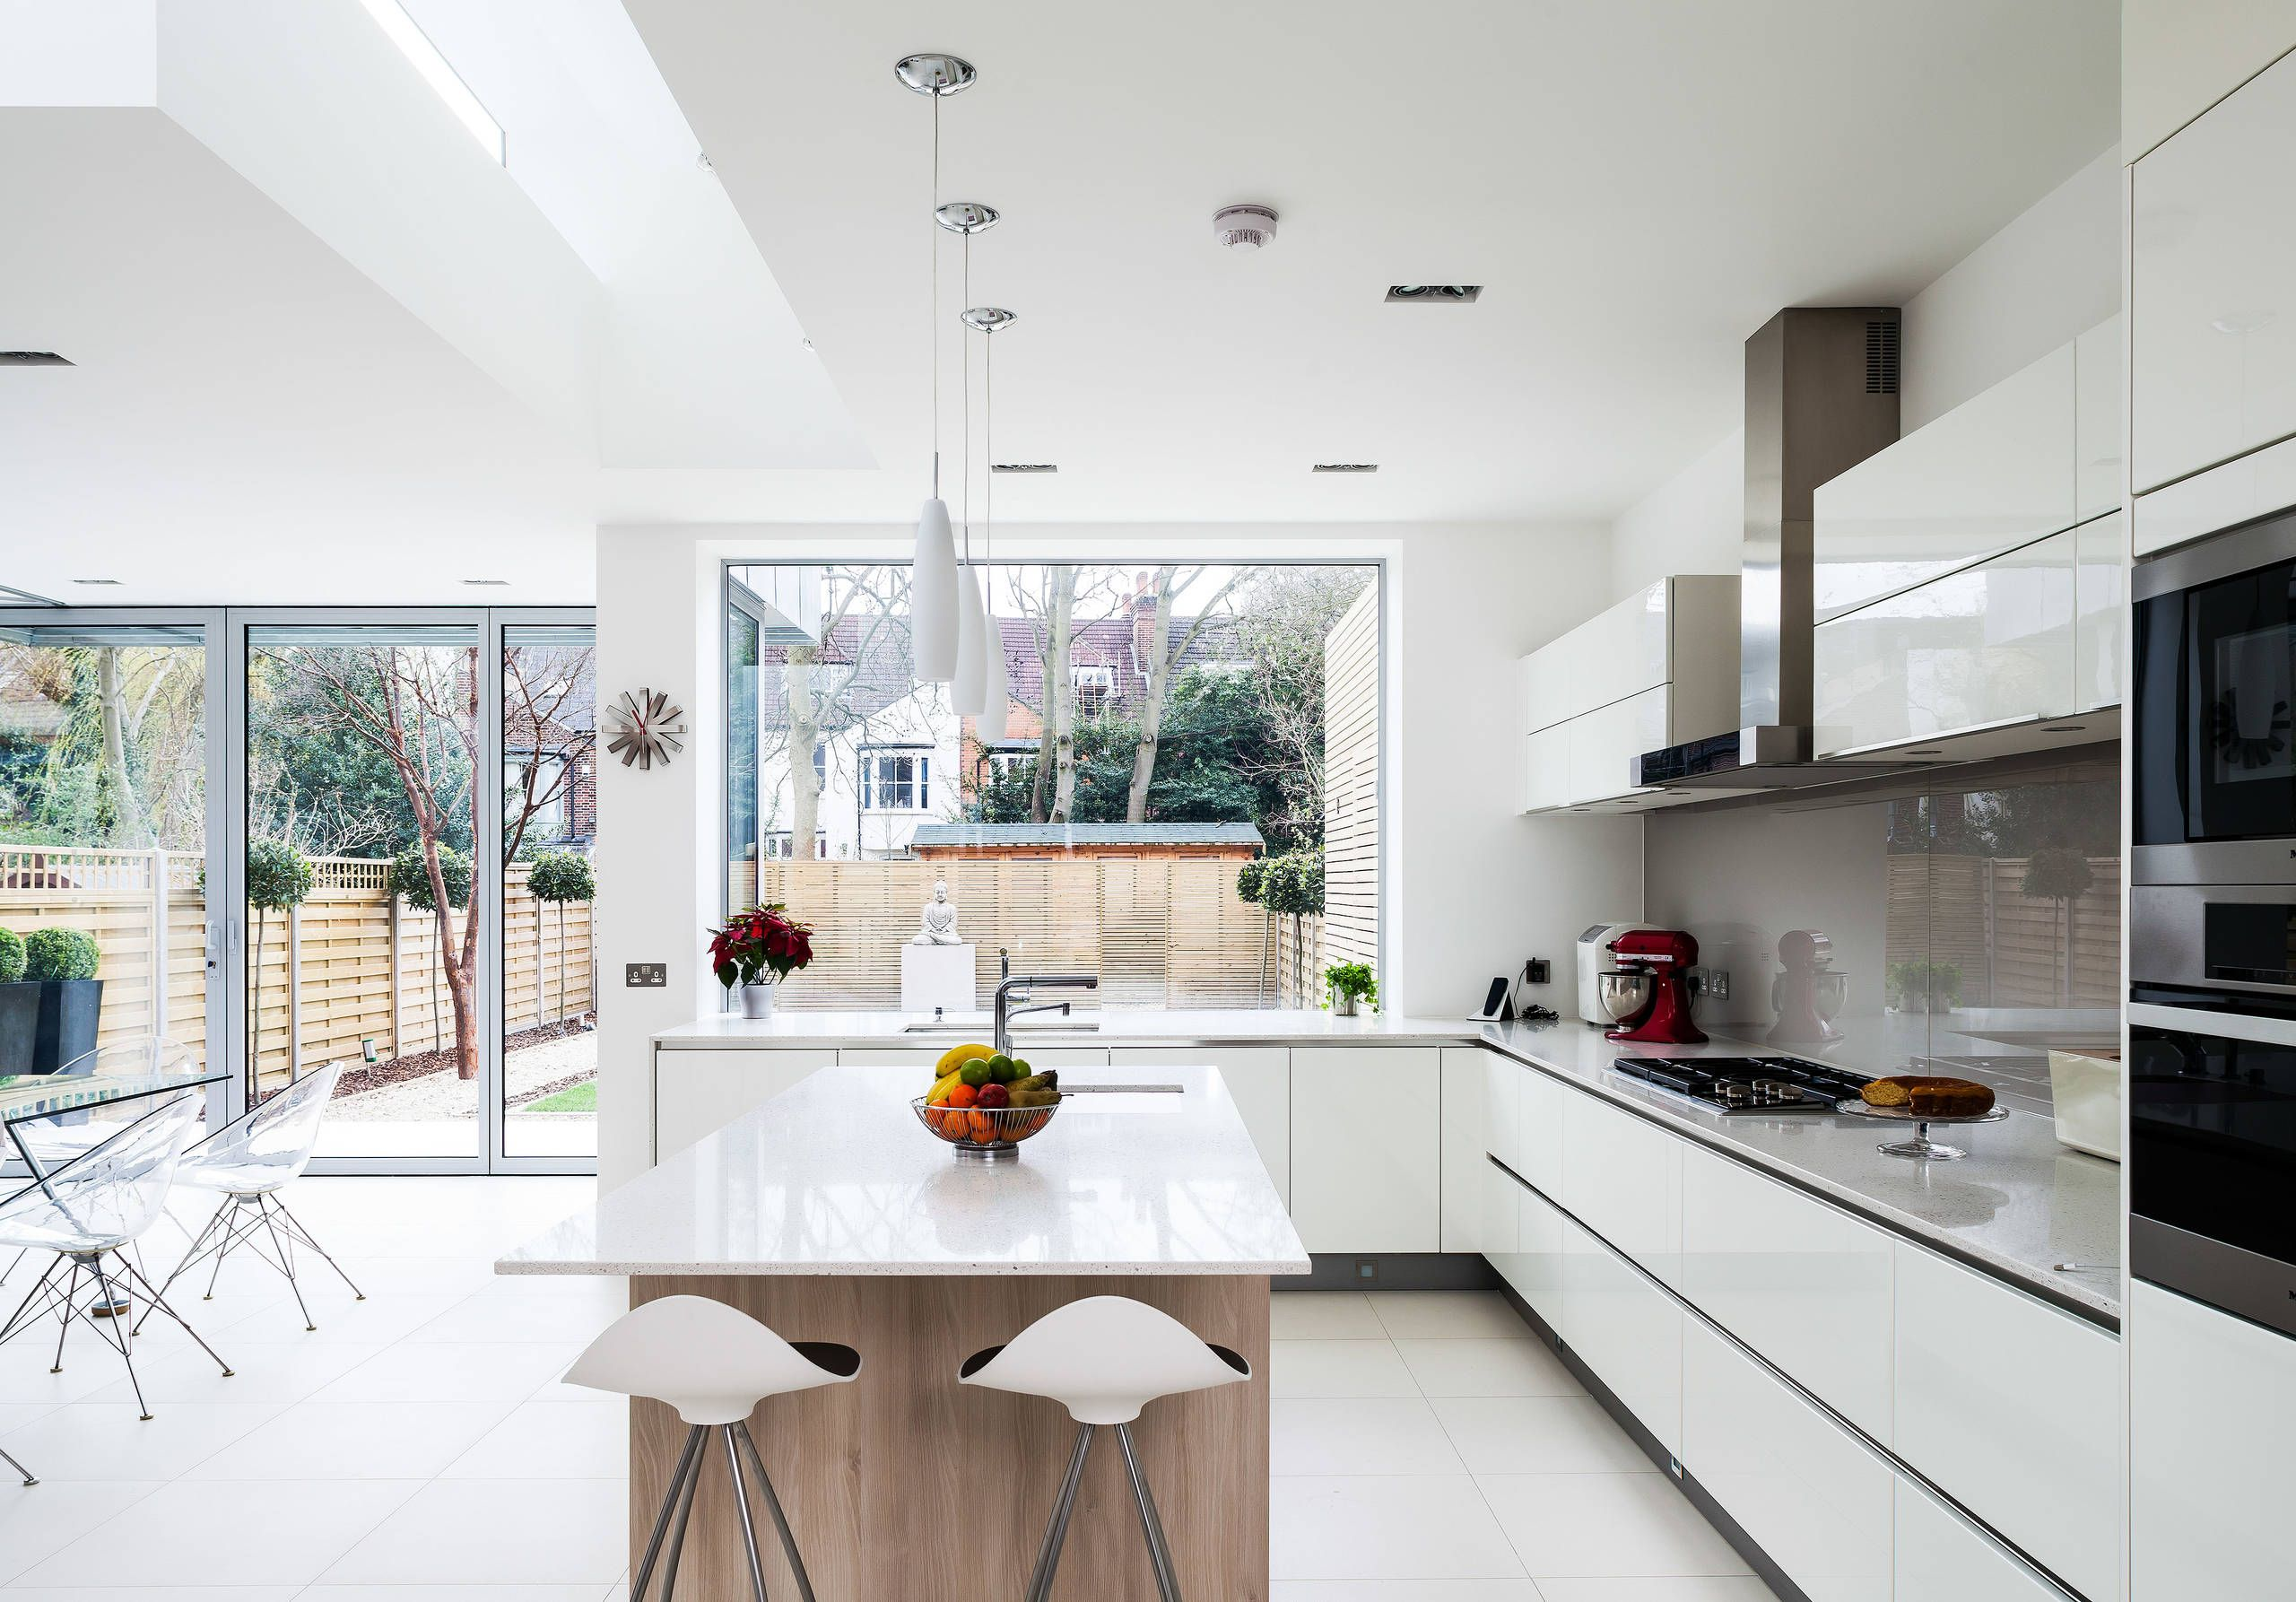 Houzz crouch hall rd contemporary kitchen london in